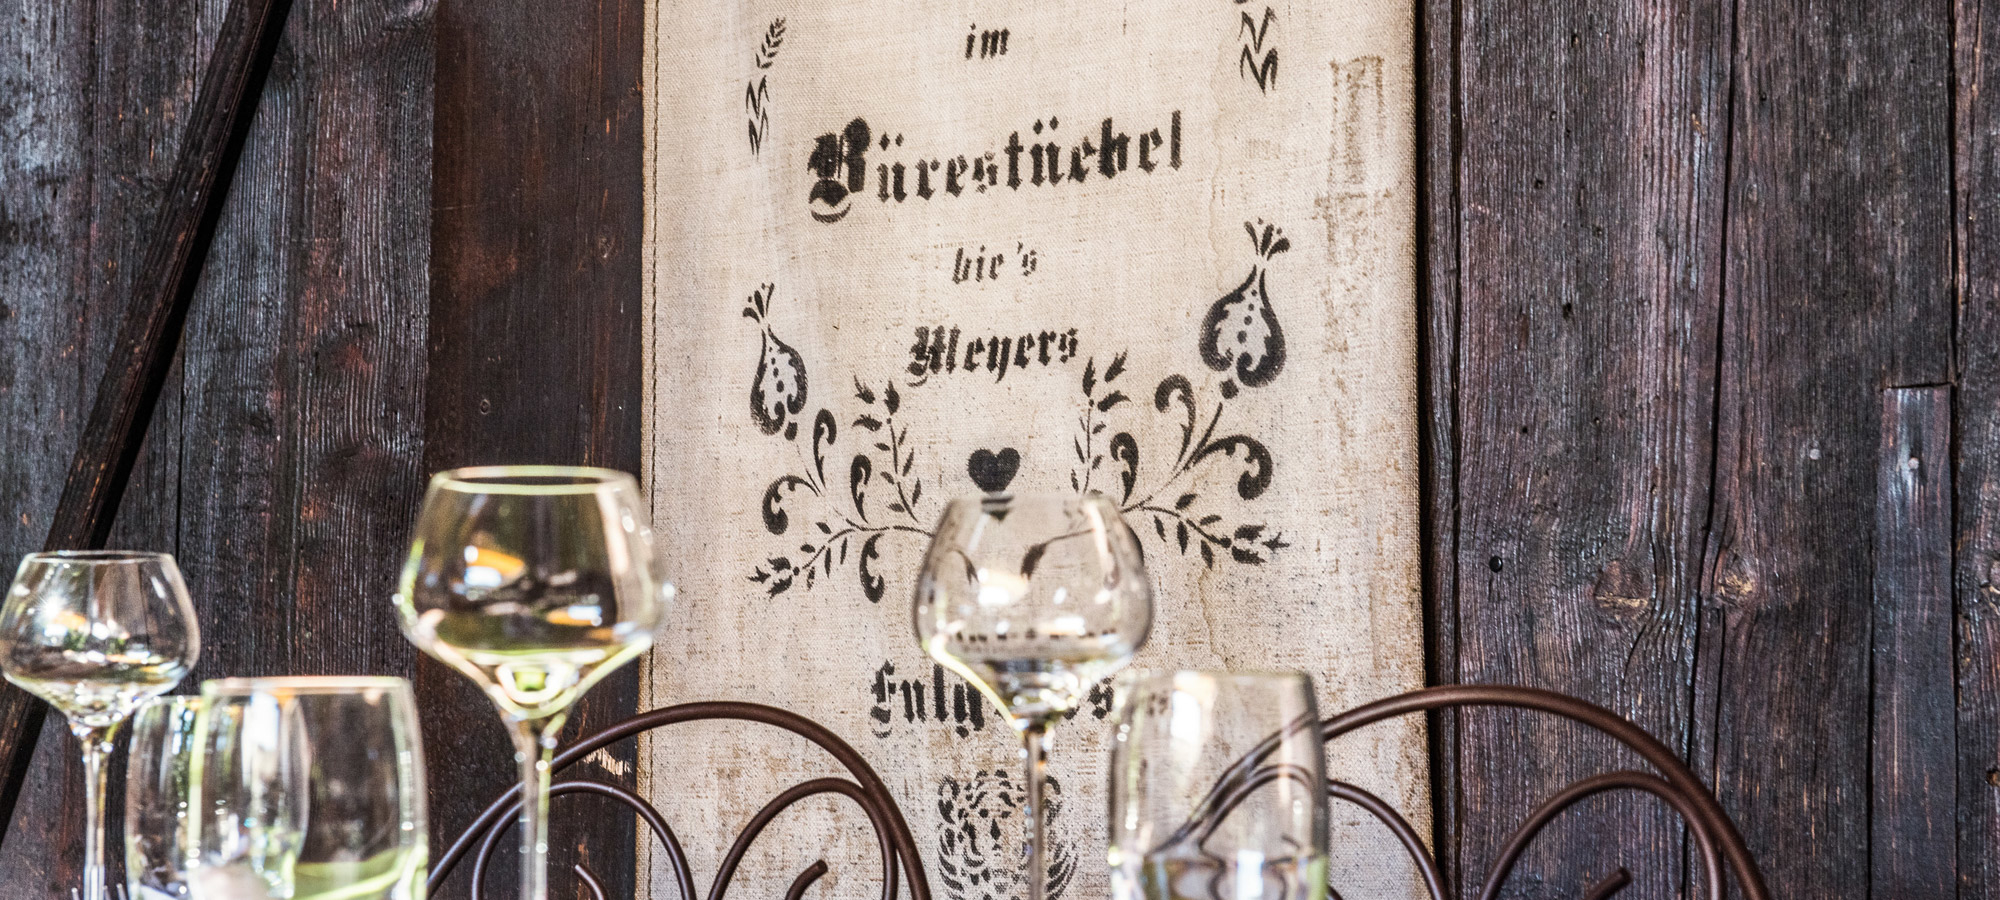 Restaurant Bürestubel